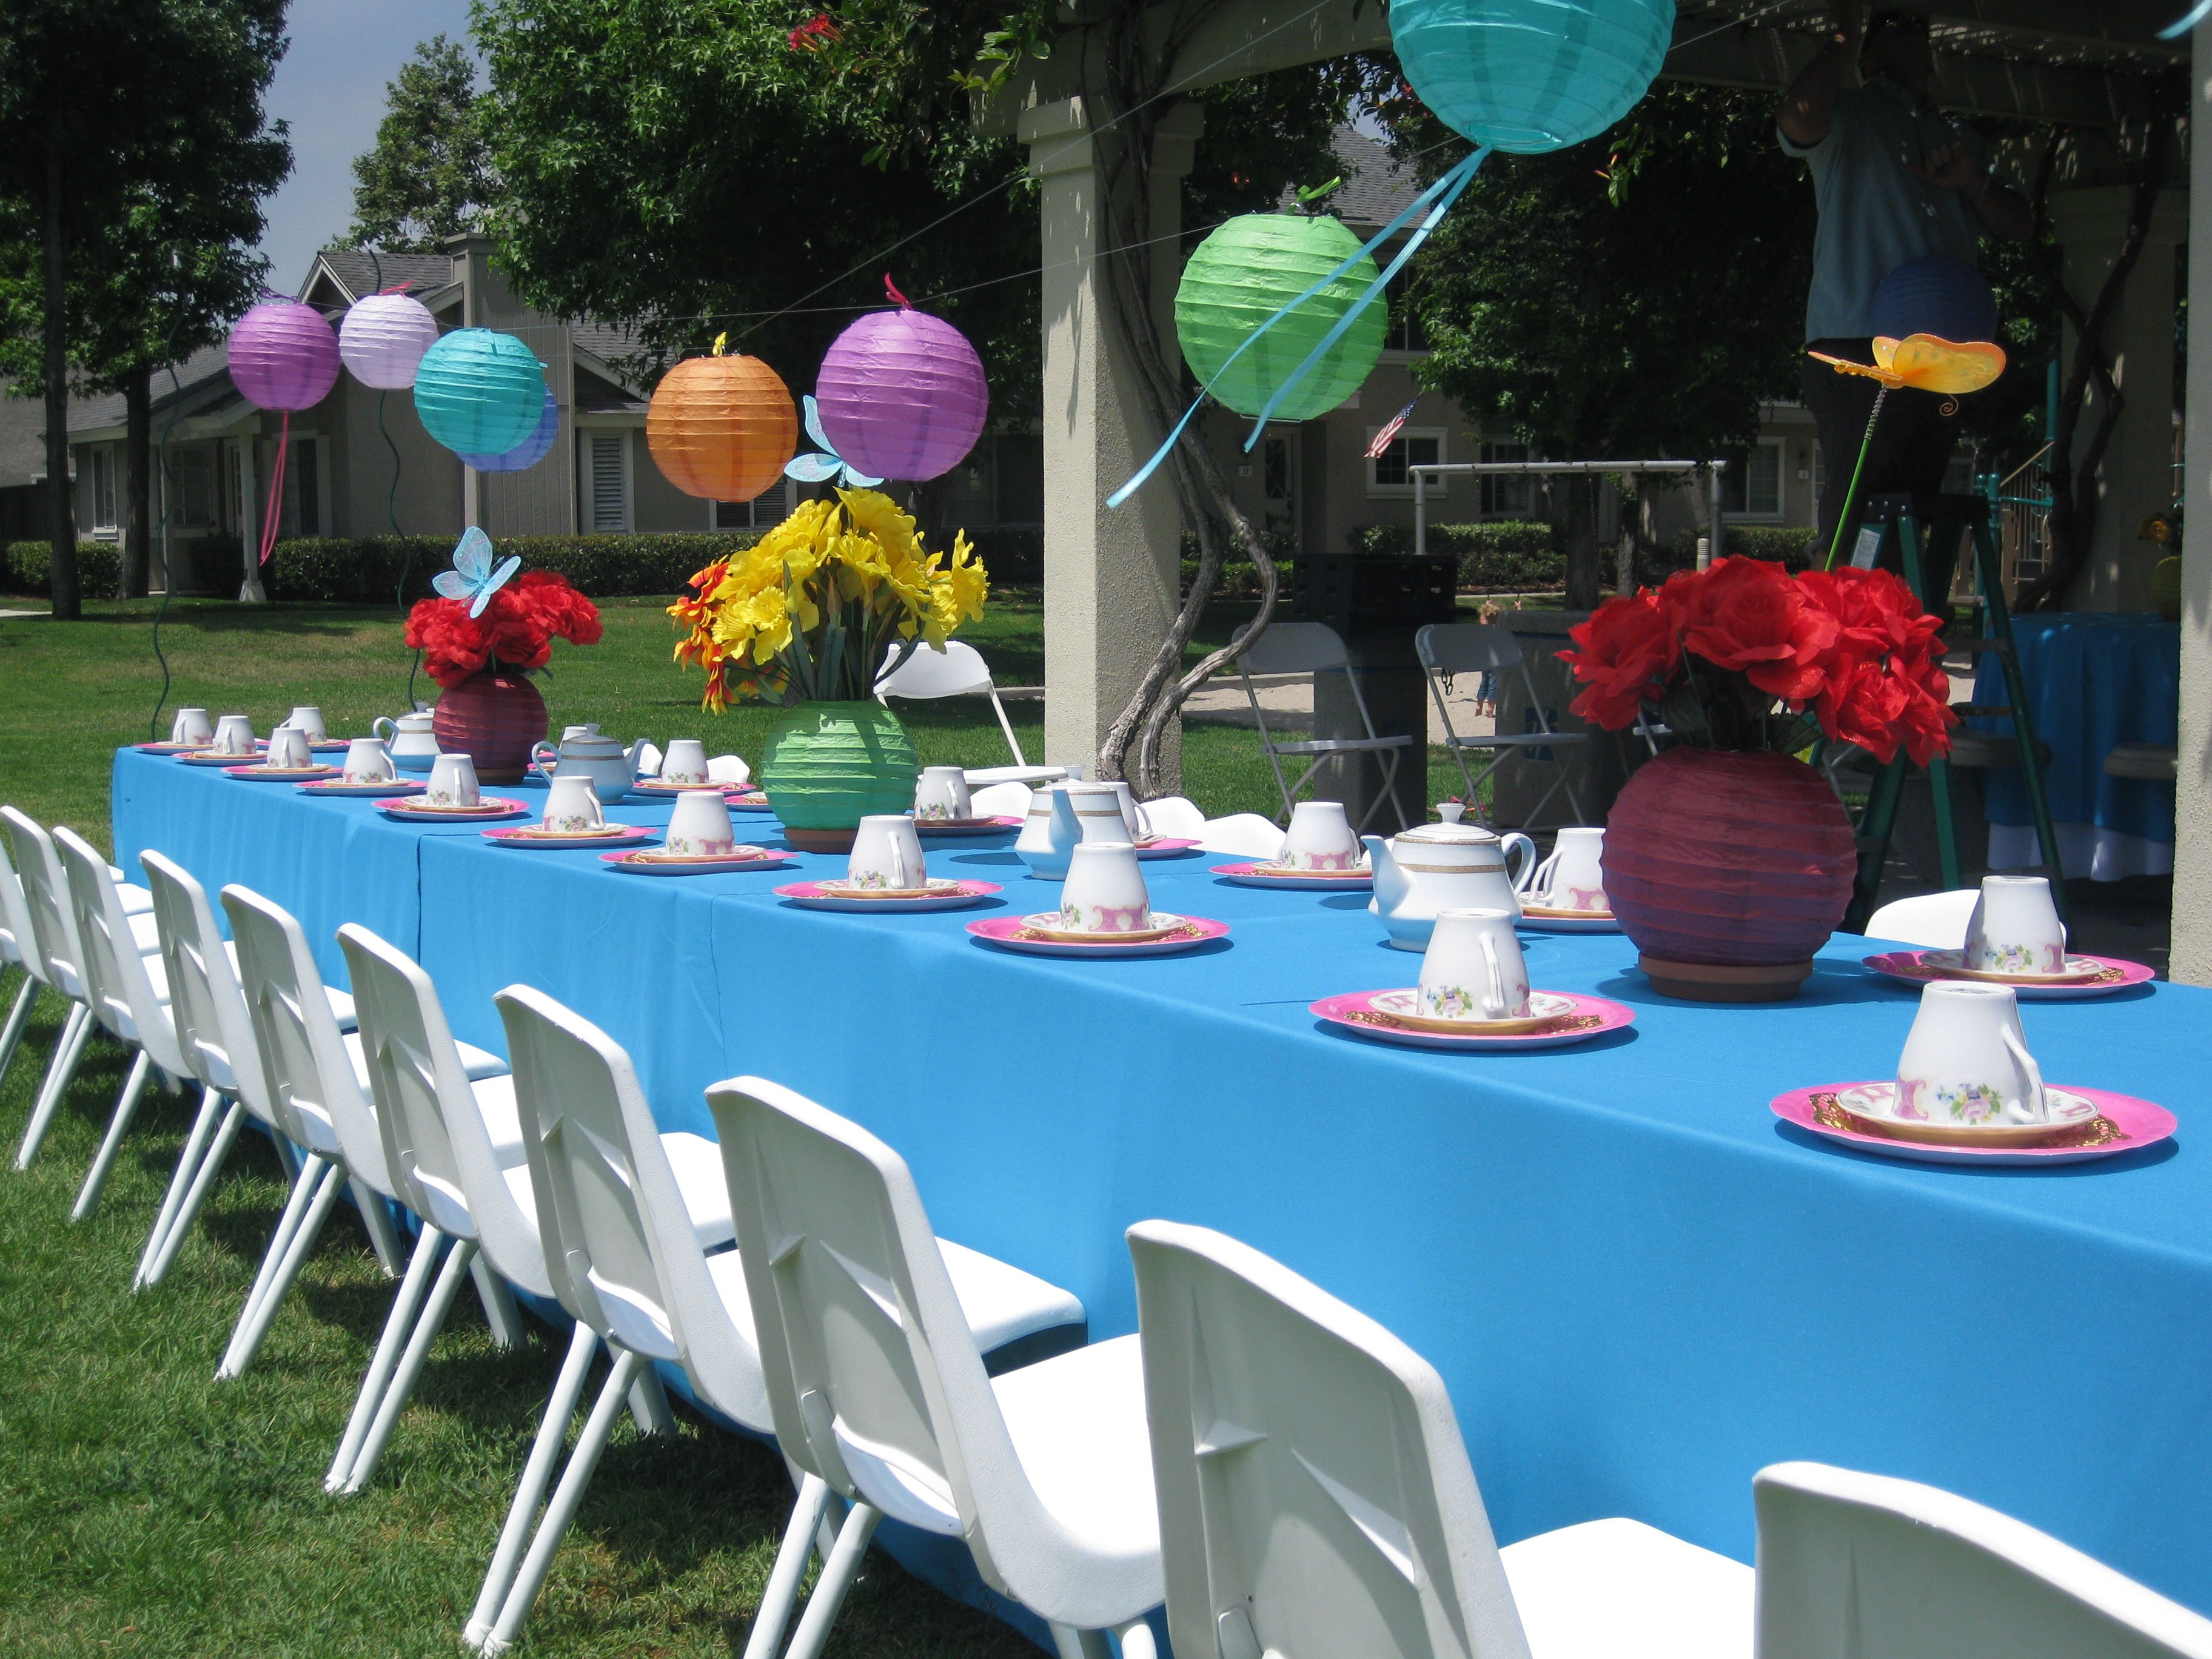 Stupendous Alice In Wonderland Tea Party Kids Sized Tables And Chairs Caraccident5 Cool Chair Designs And Ideas Caraccident5Info